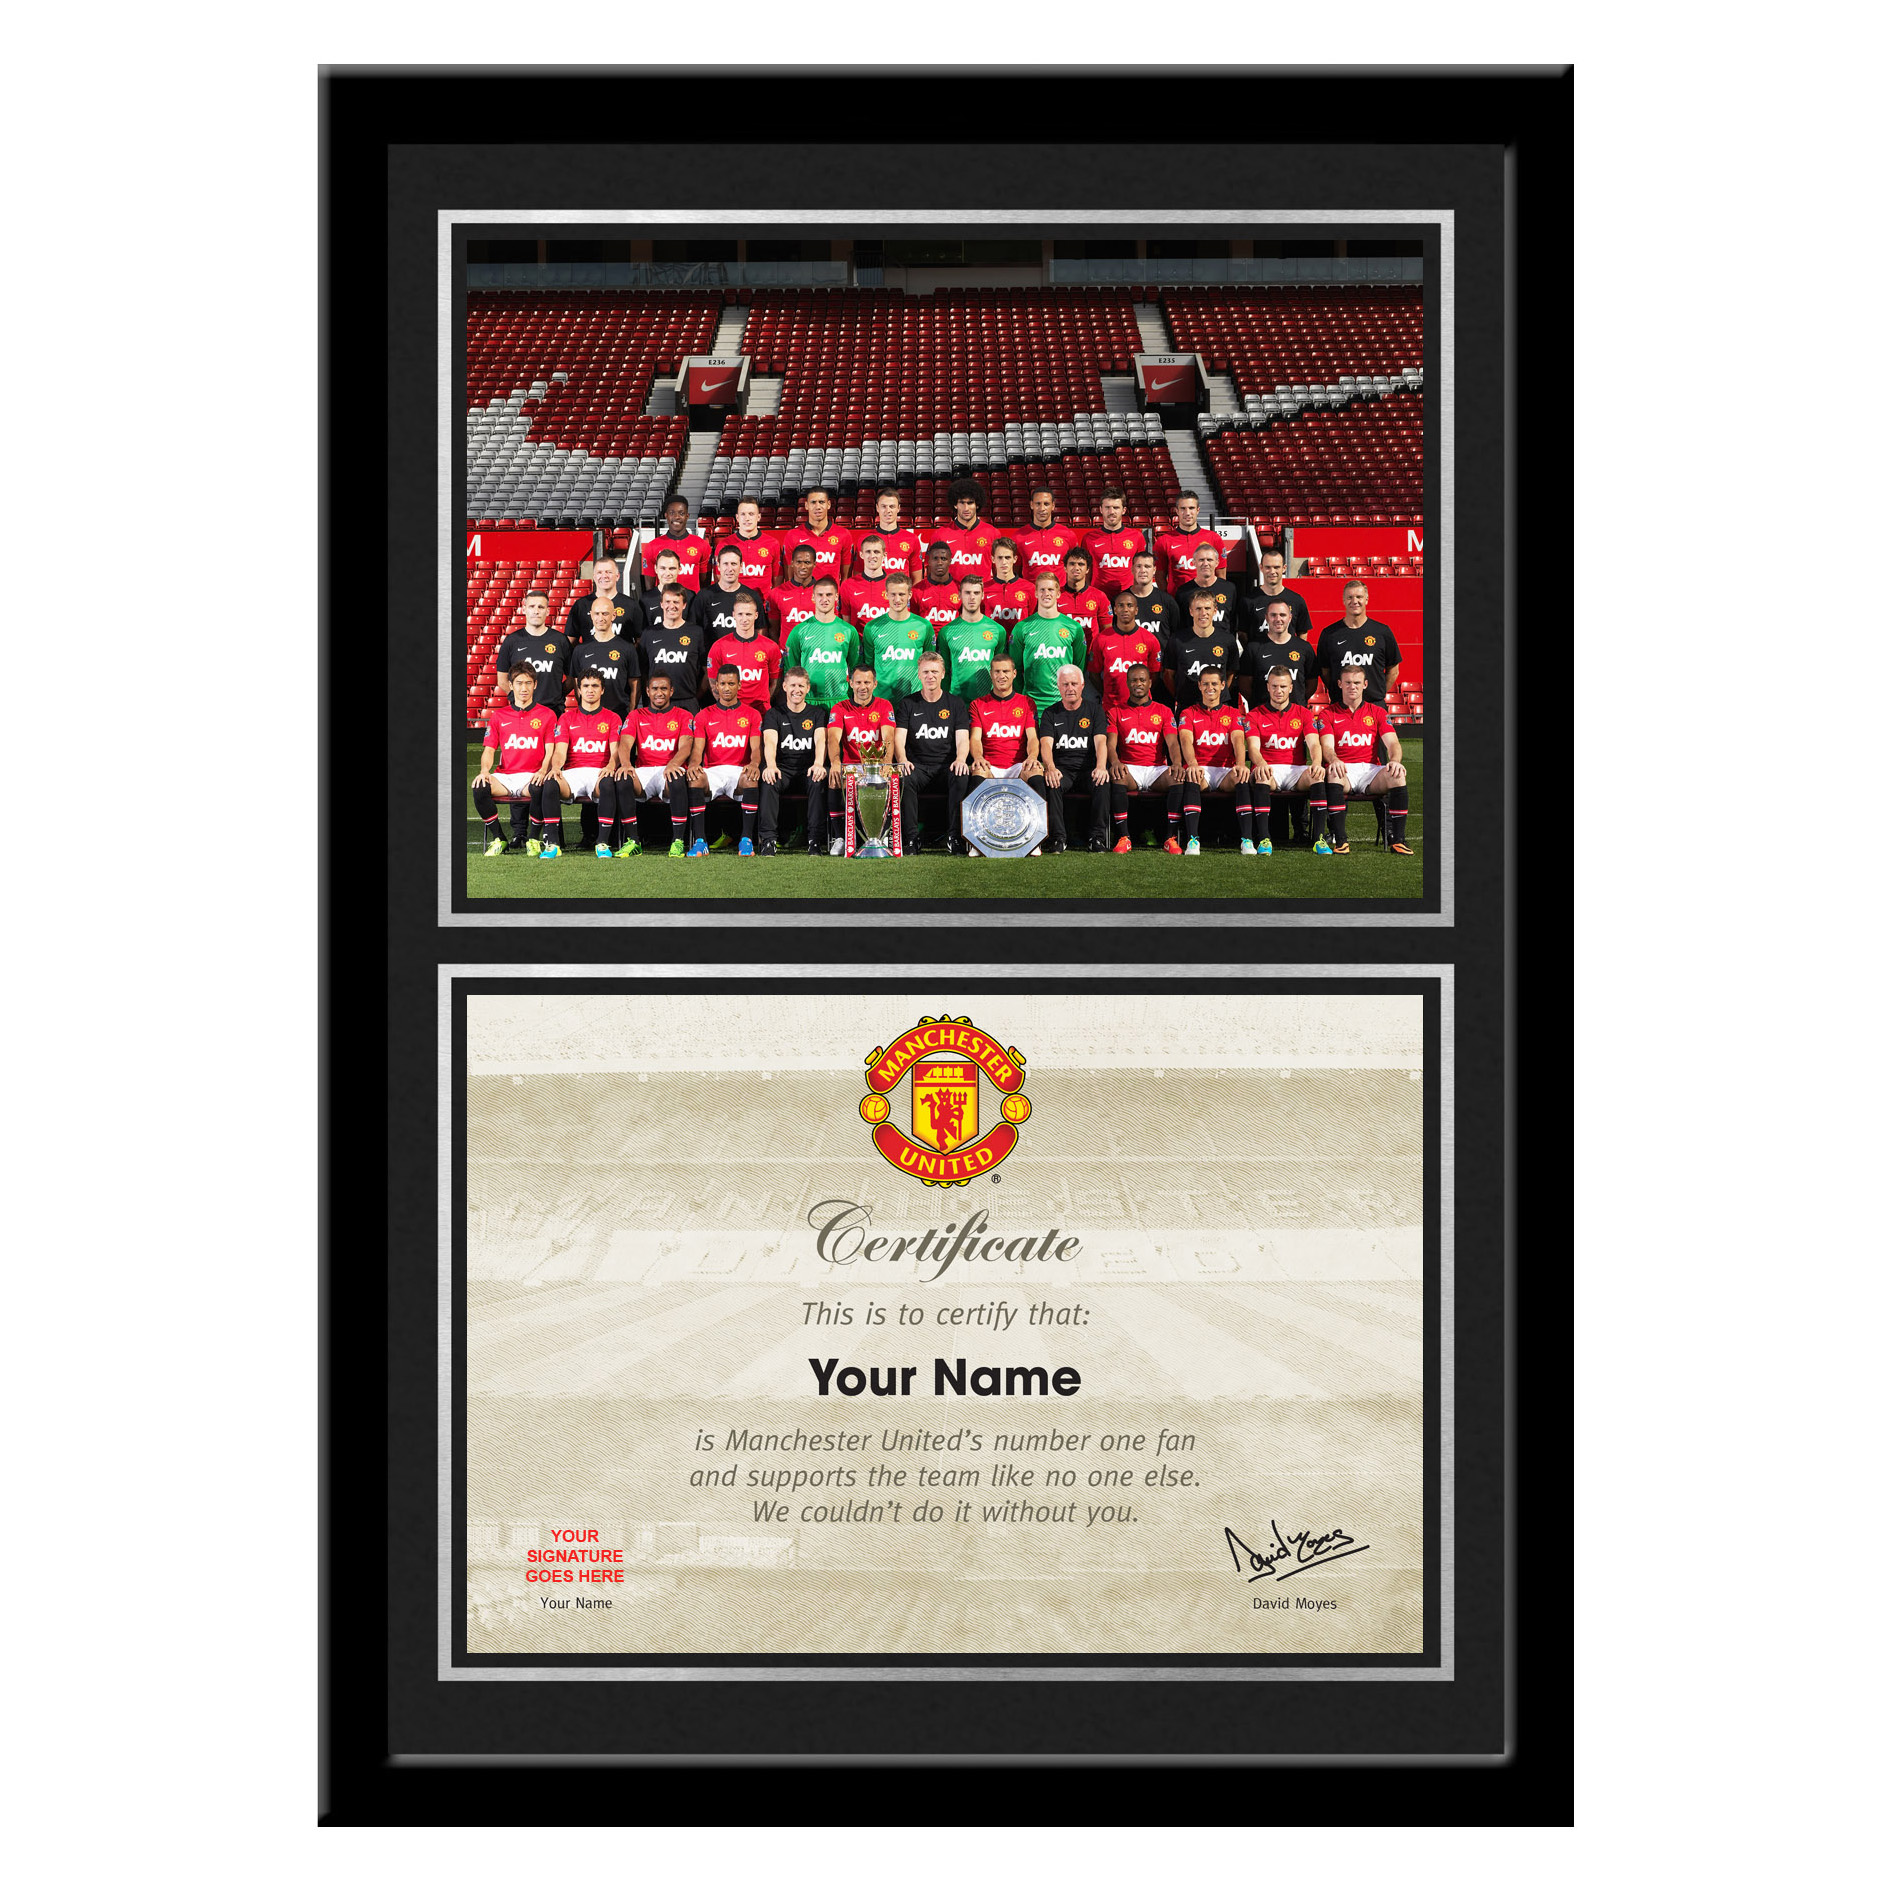 Manchester United Personalised No 1 Fan Certificate with Team Photo - Framed